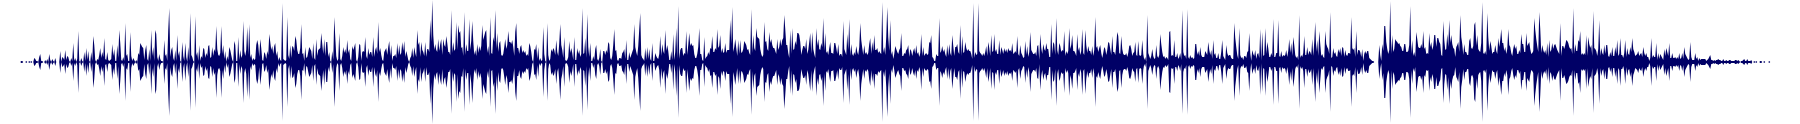 waveform of track #84641